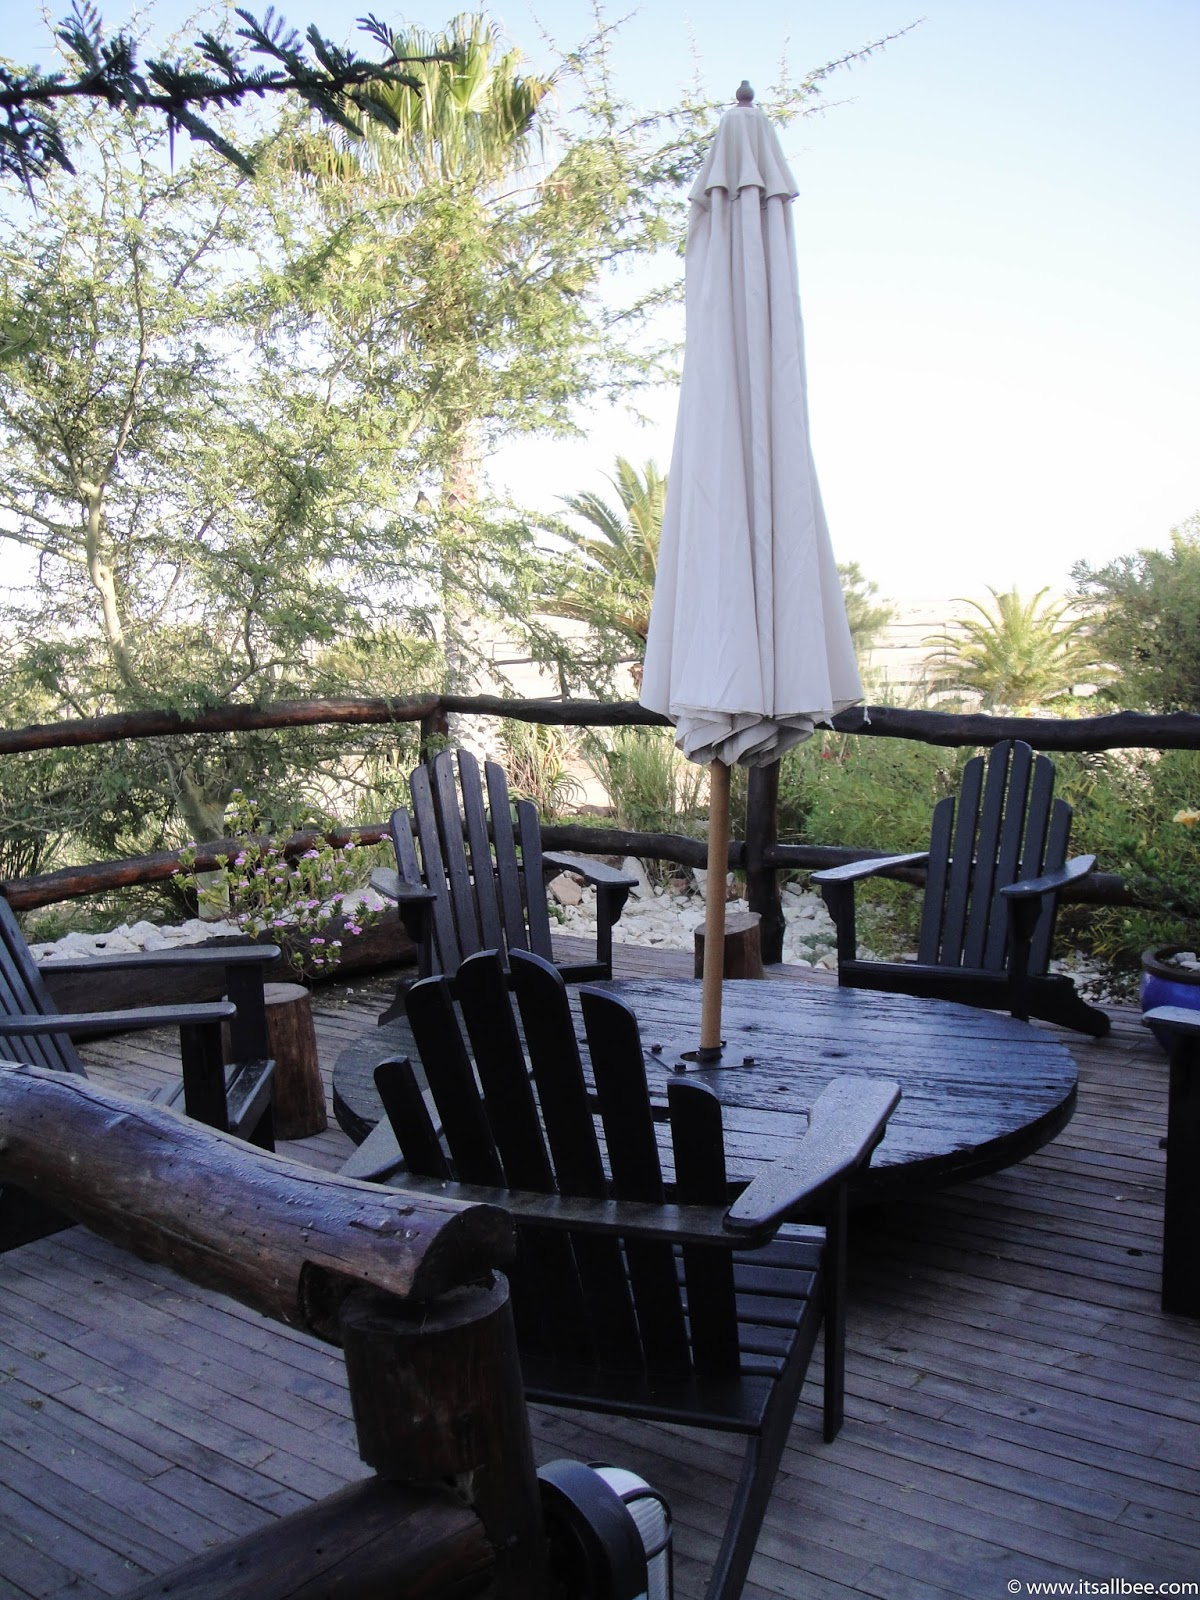 affordable self catering accommodation in swakopmund | namibia self catering accommodation swakopmund | luxury accommodation in swakopmund